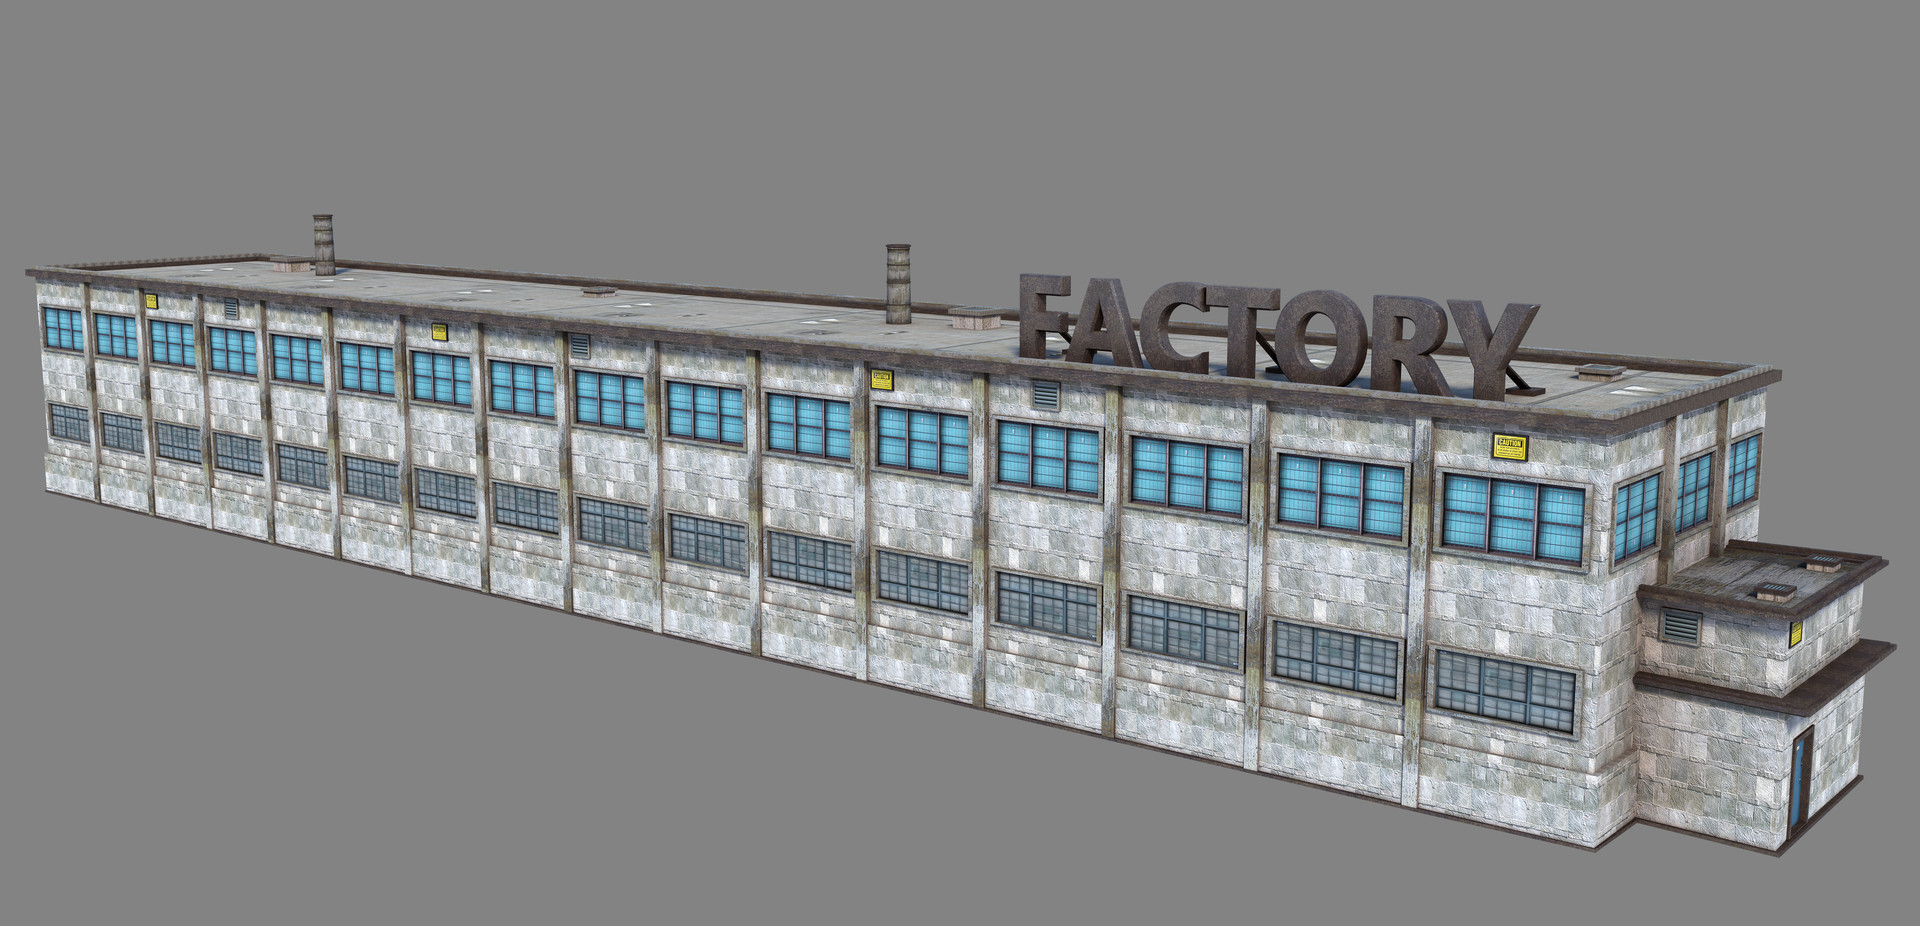 Marc mons factory2